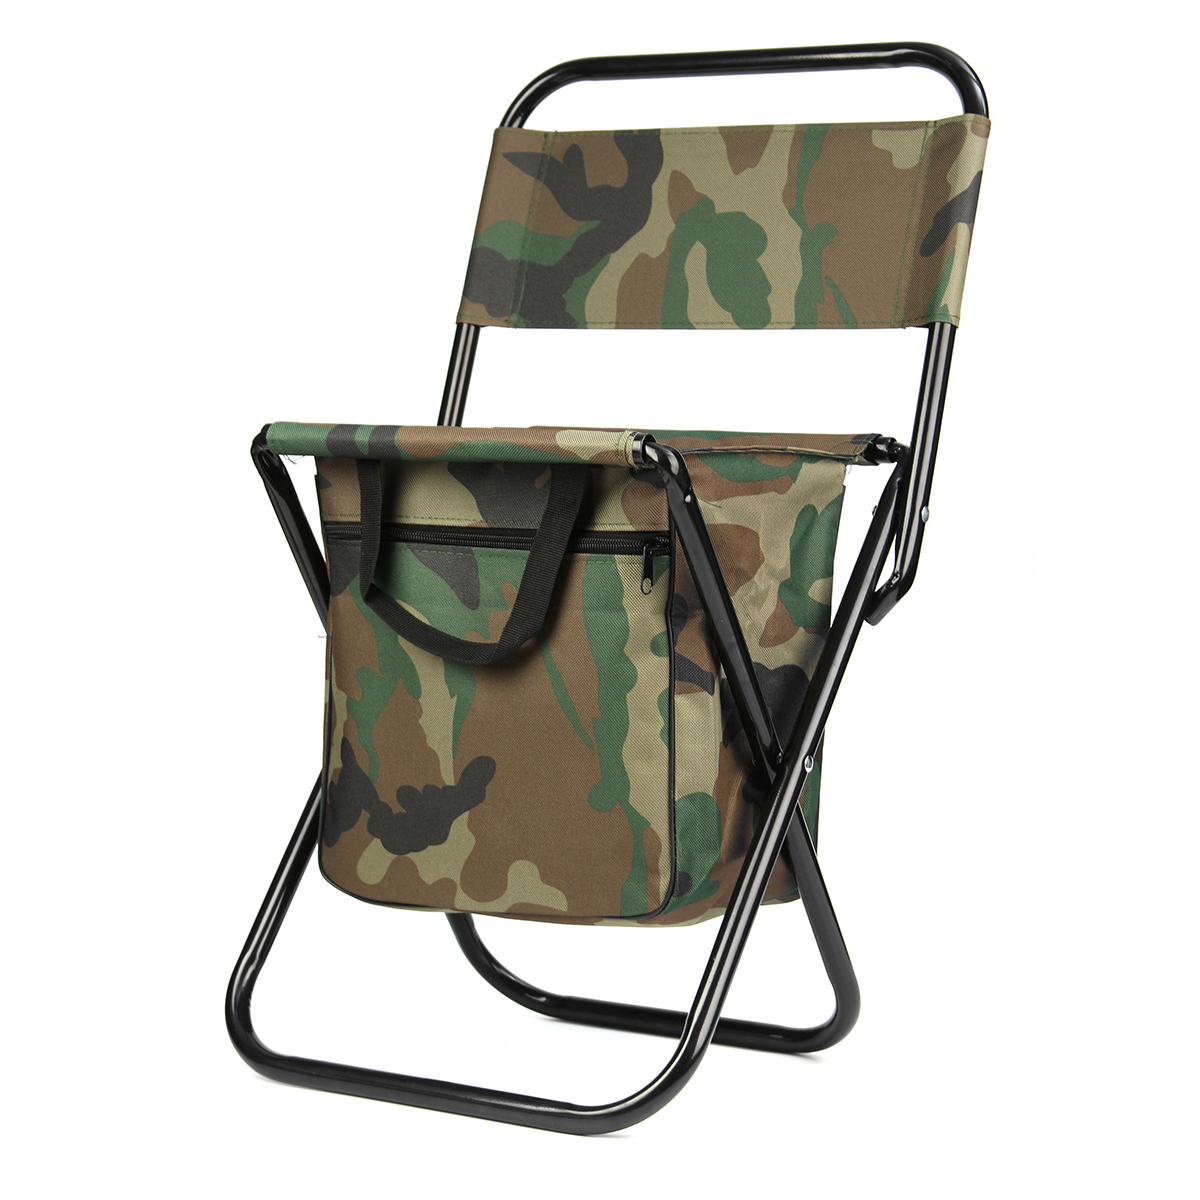 Camo Folding Chair Chairs Camouflage Folding Chair Outdoor Camping Fishing